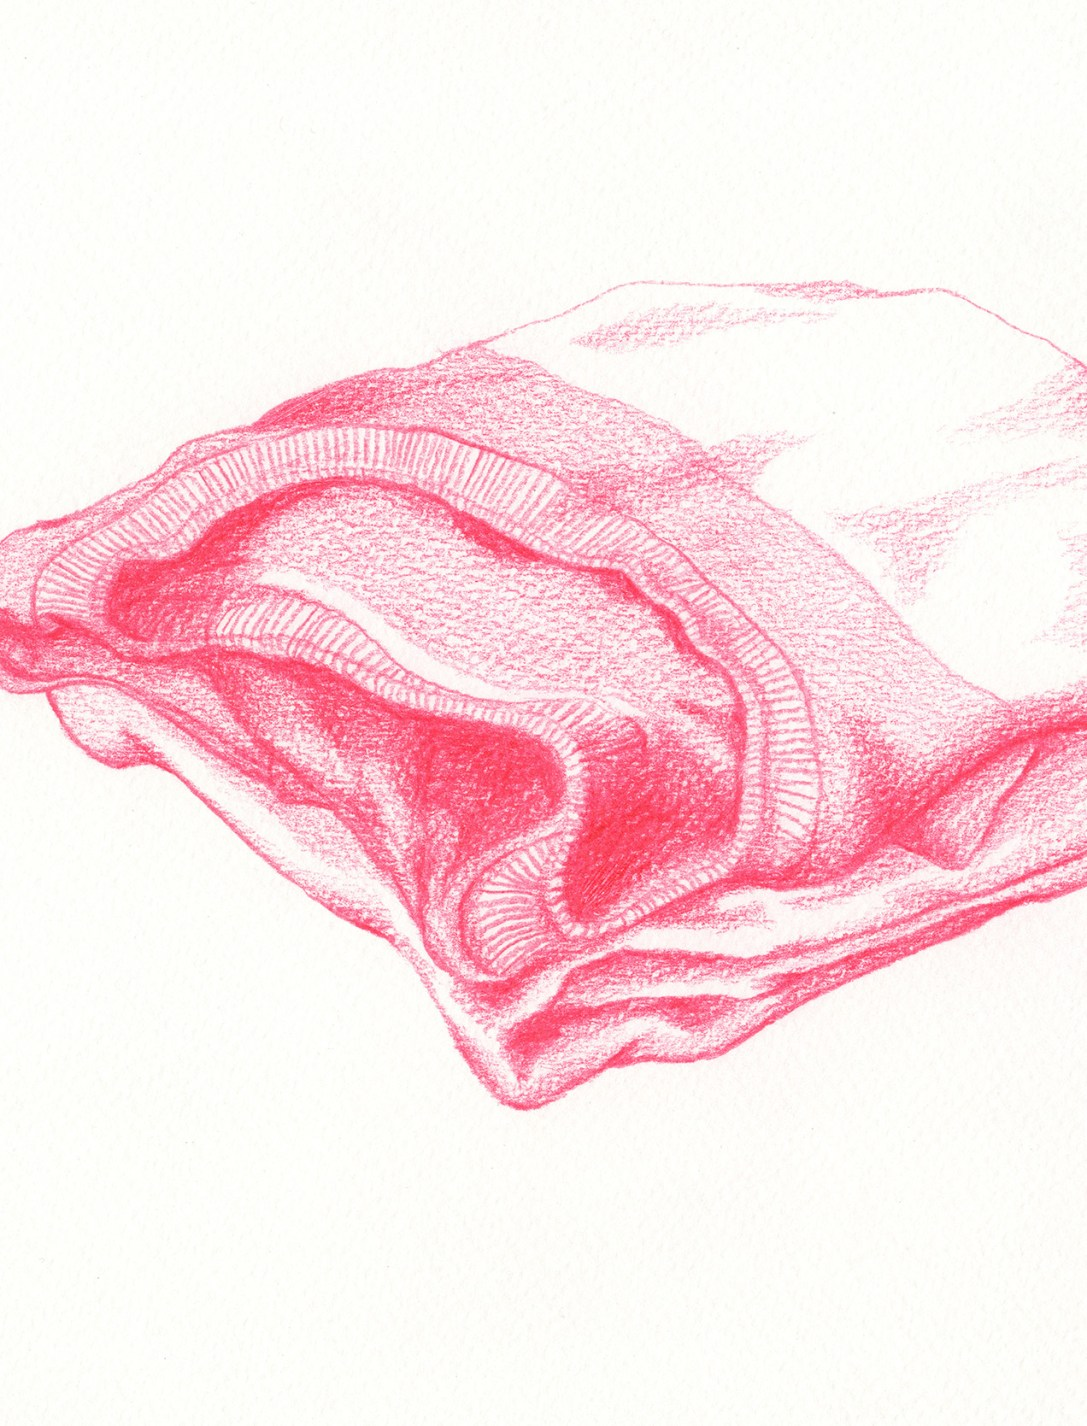 FOLDED | pencil on paper